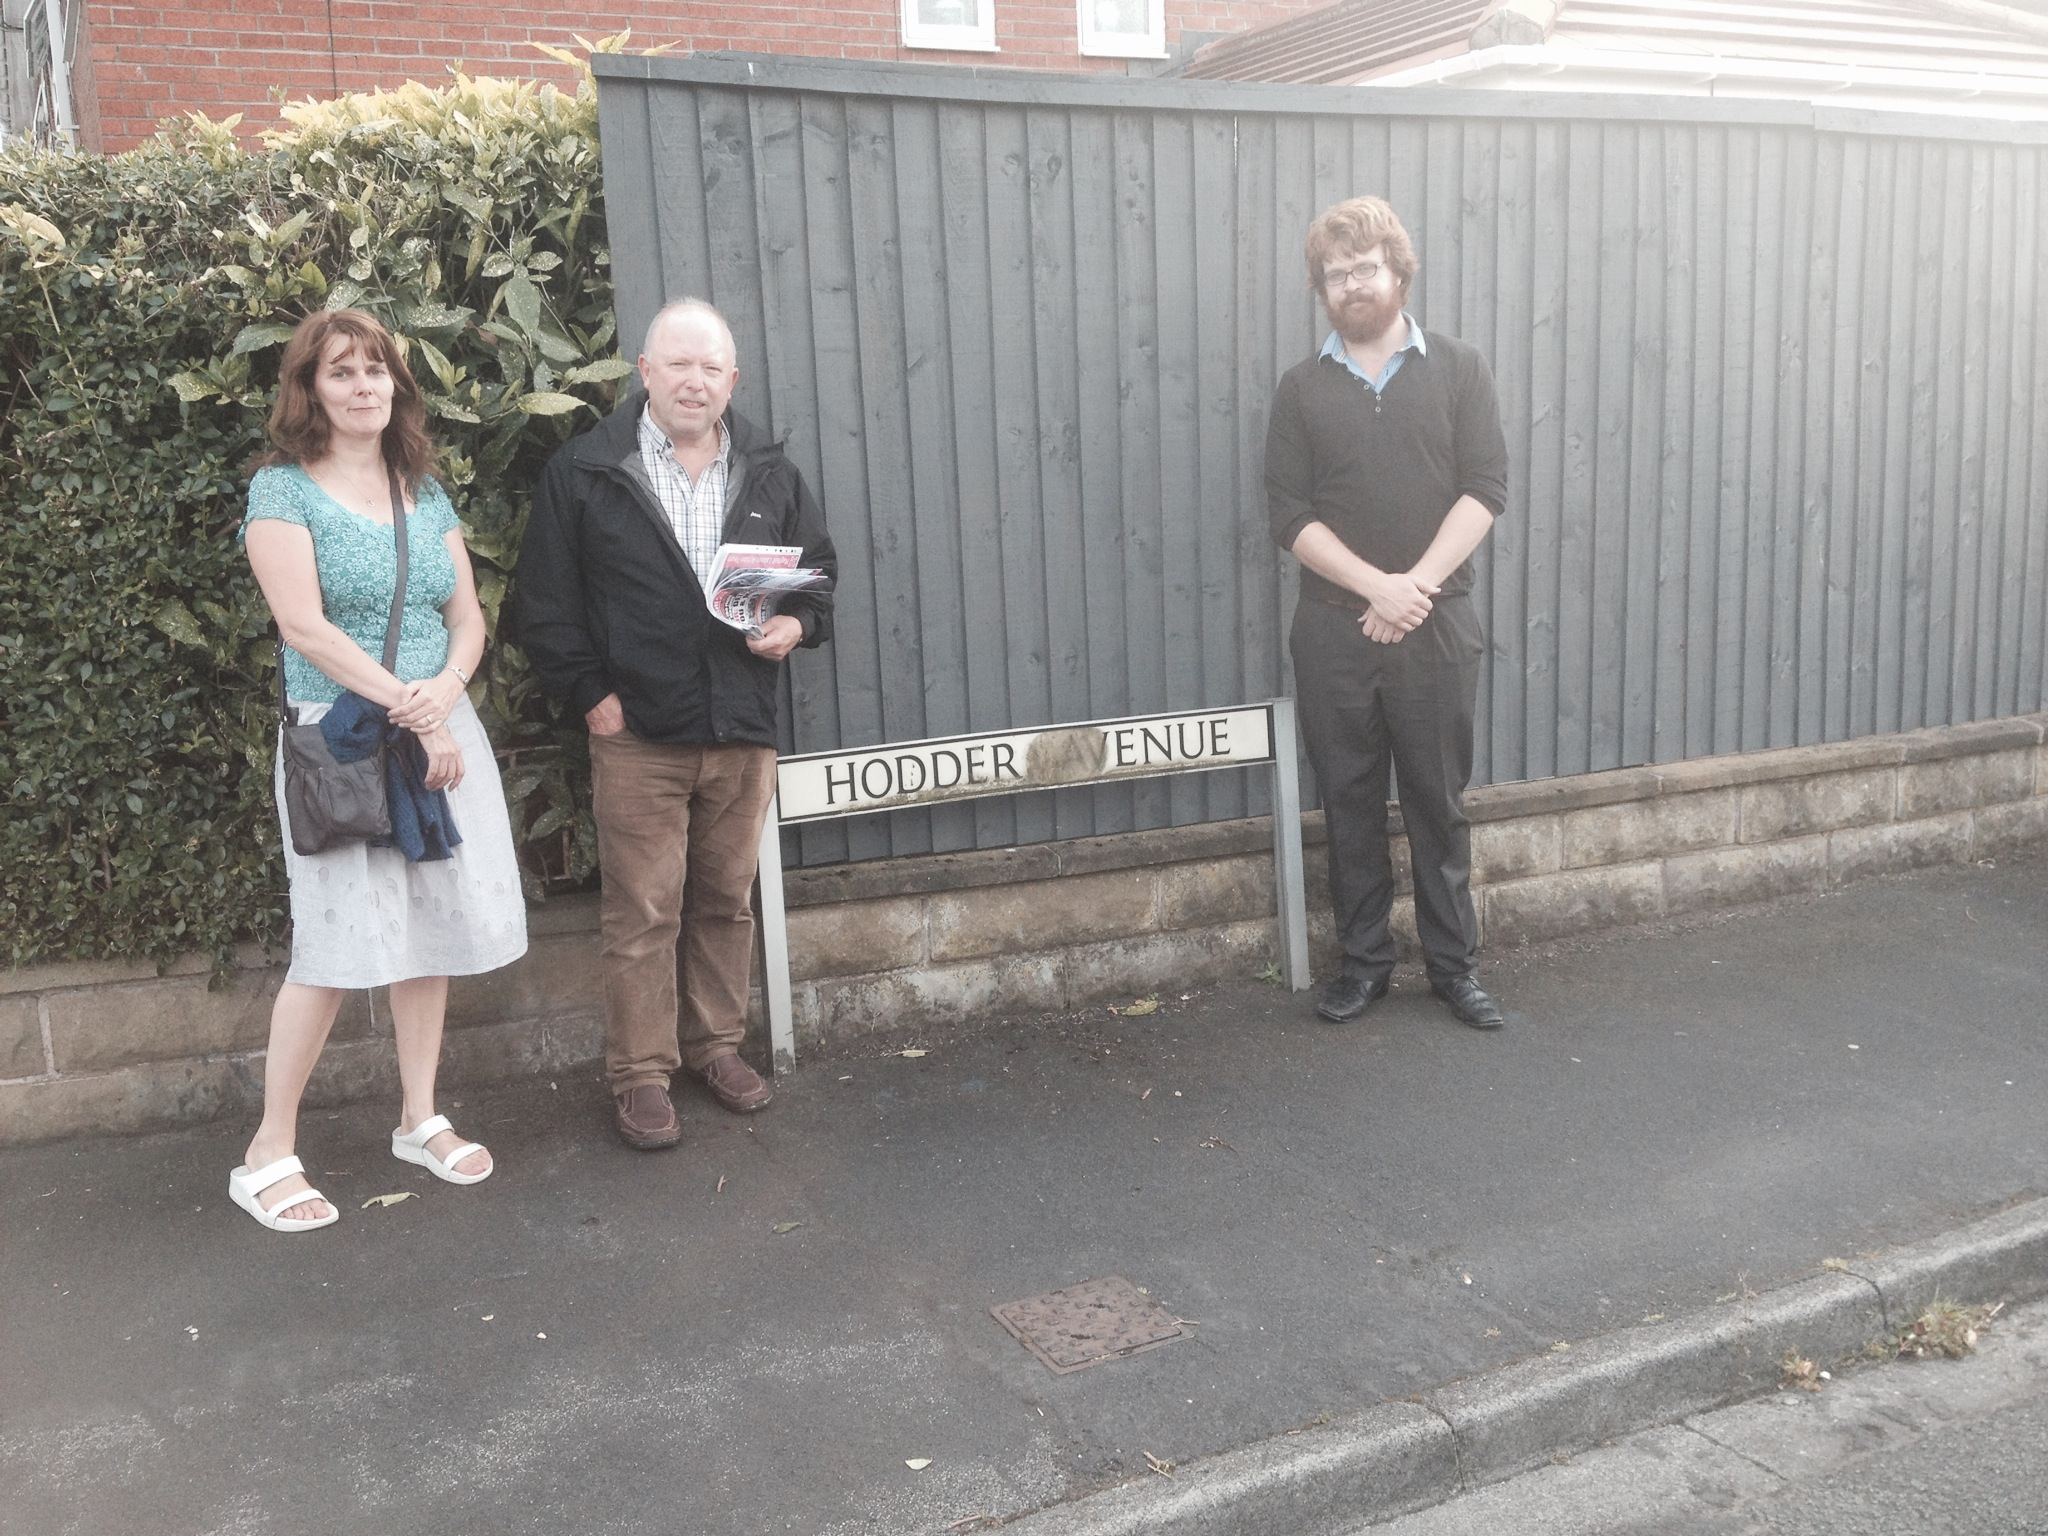 Maghull Labour Action Team's Clle Lynn Gatherer, John Sayers and Cllr Rob Owens are calling for Hodder Avenue signs to be replaced.